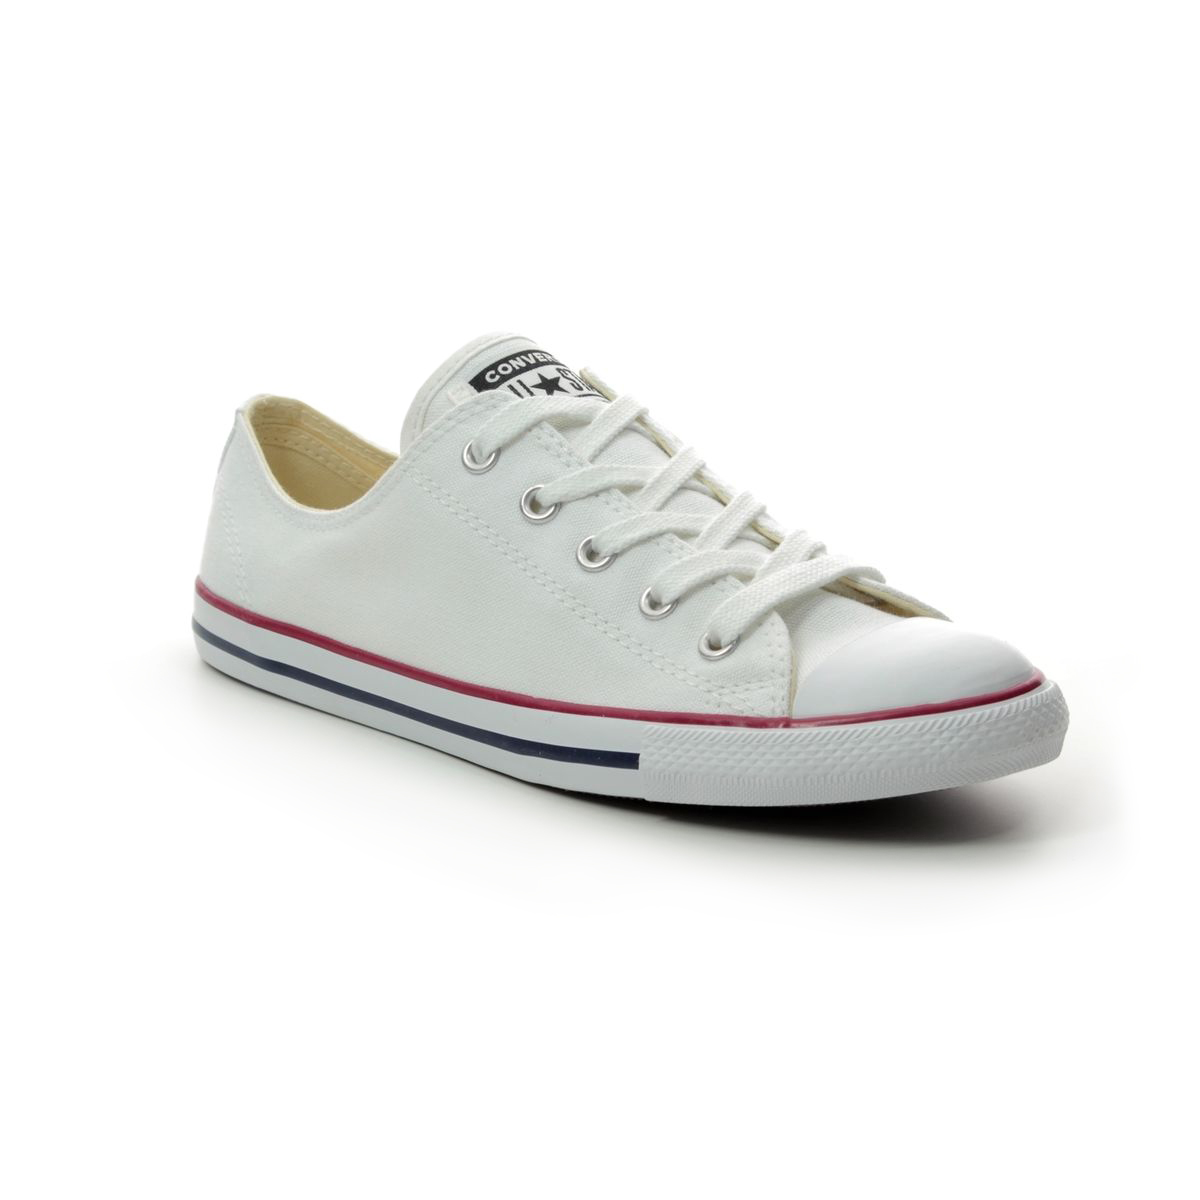 5cdaf66caf3690 Converse Trainers - White Red and Blue - 537204C ALL STAR DAINTY OX